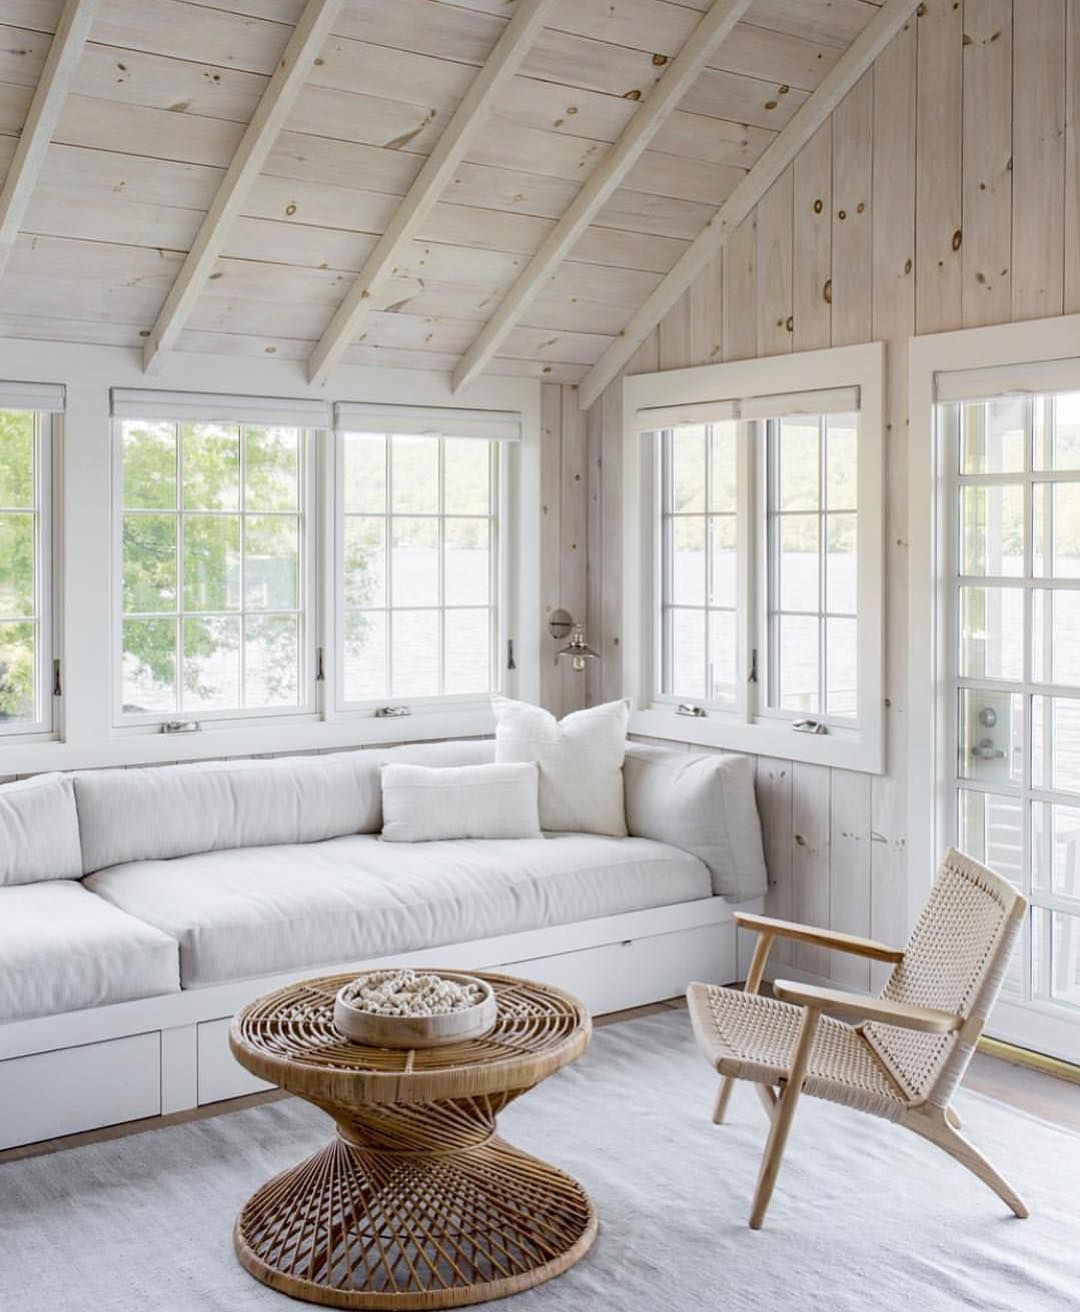 Happily Have My Head Down Working On A Family S Dream Lake House This Week Spaces Like This Are Spo Decor Home Living Room Home Living Room Cottage Interiors